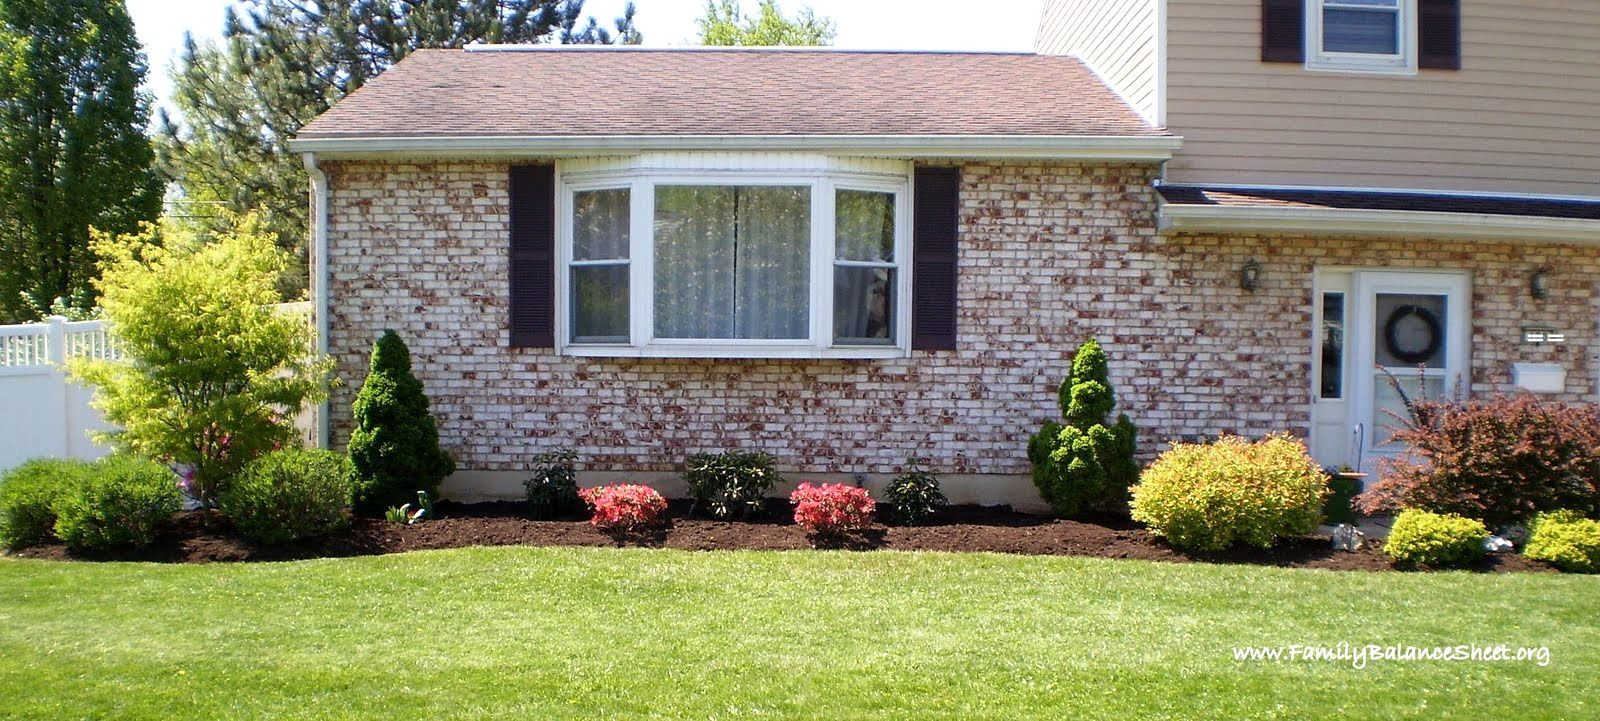 Landscaping ideas front yard ranch style home front yard for House landscaping ideas